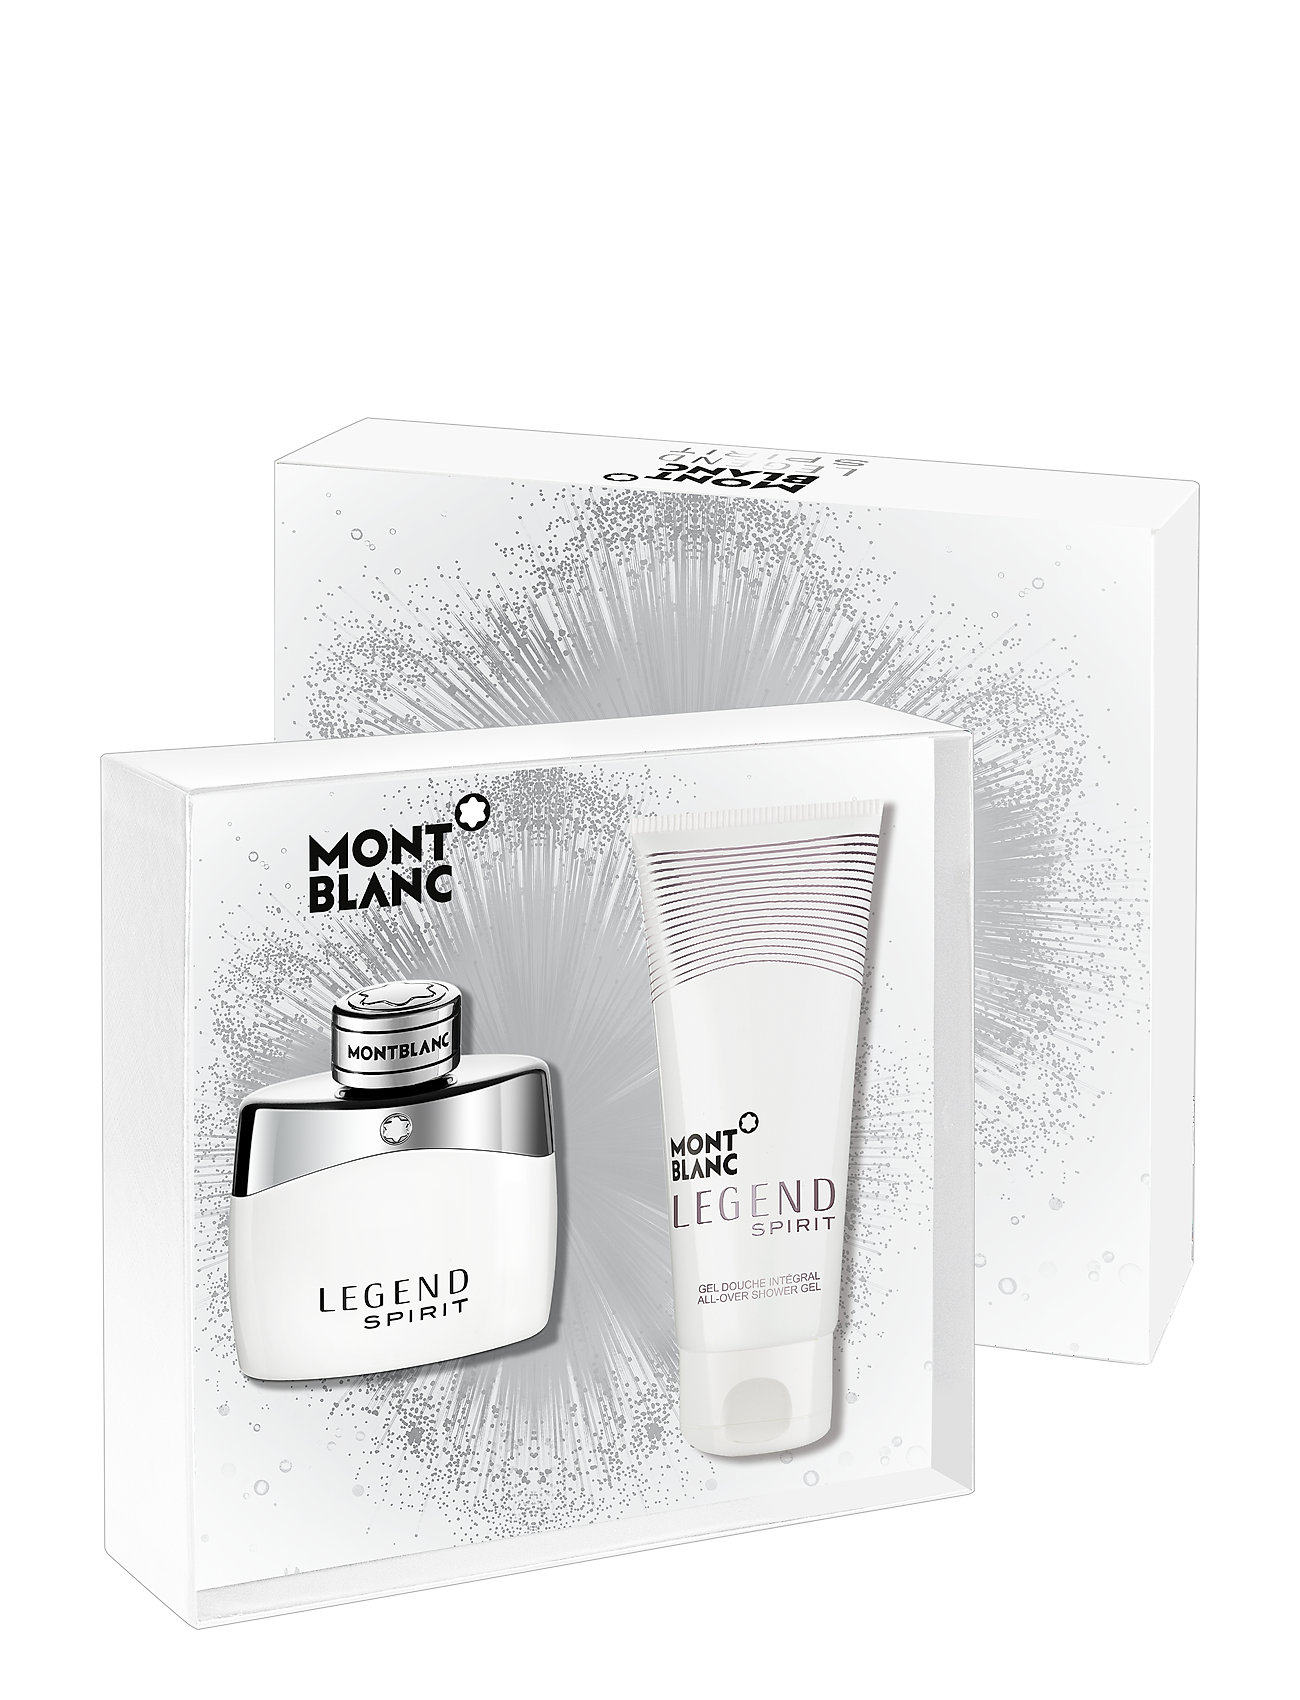 Montblanc MONTBLANC LEGEND SPIRIT Set - CLEAR